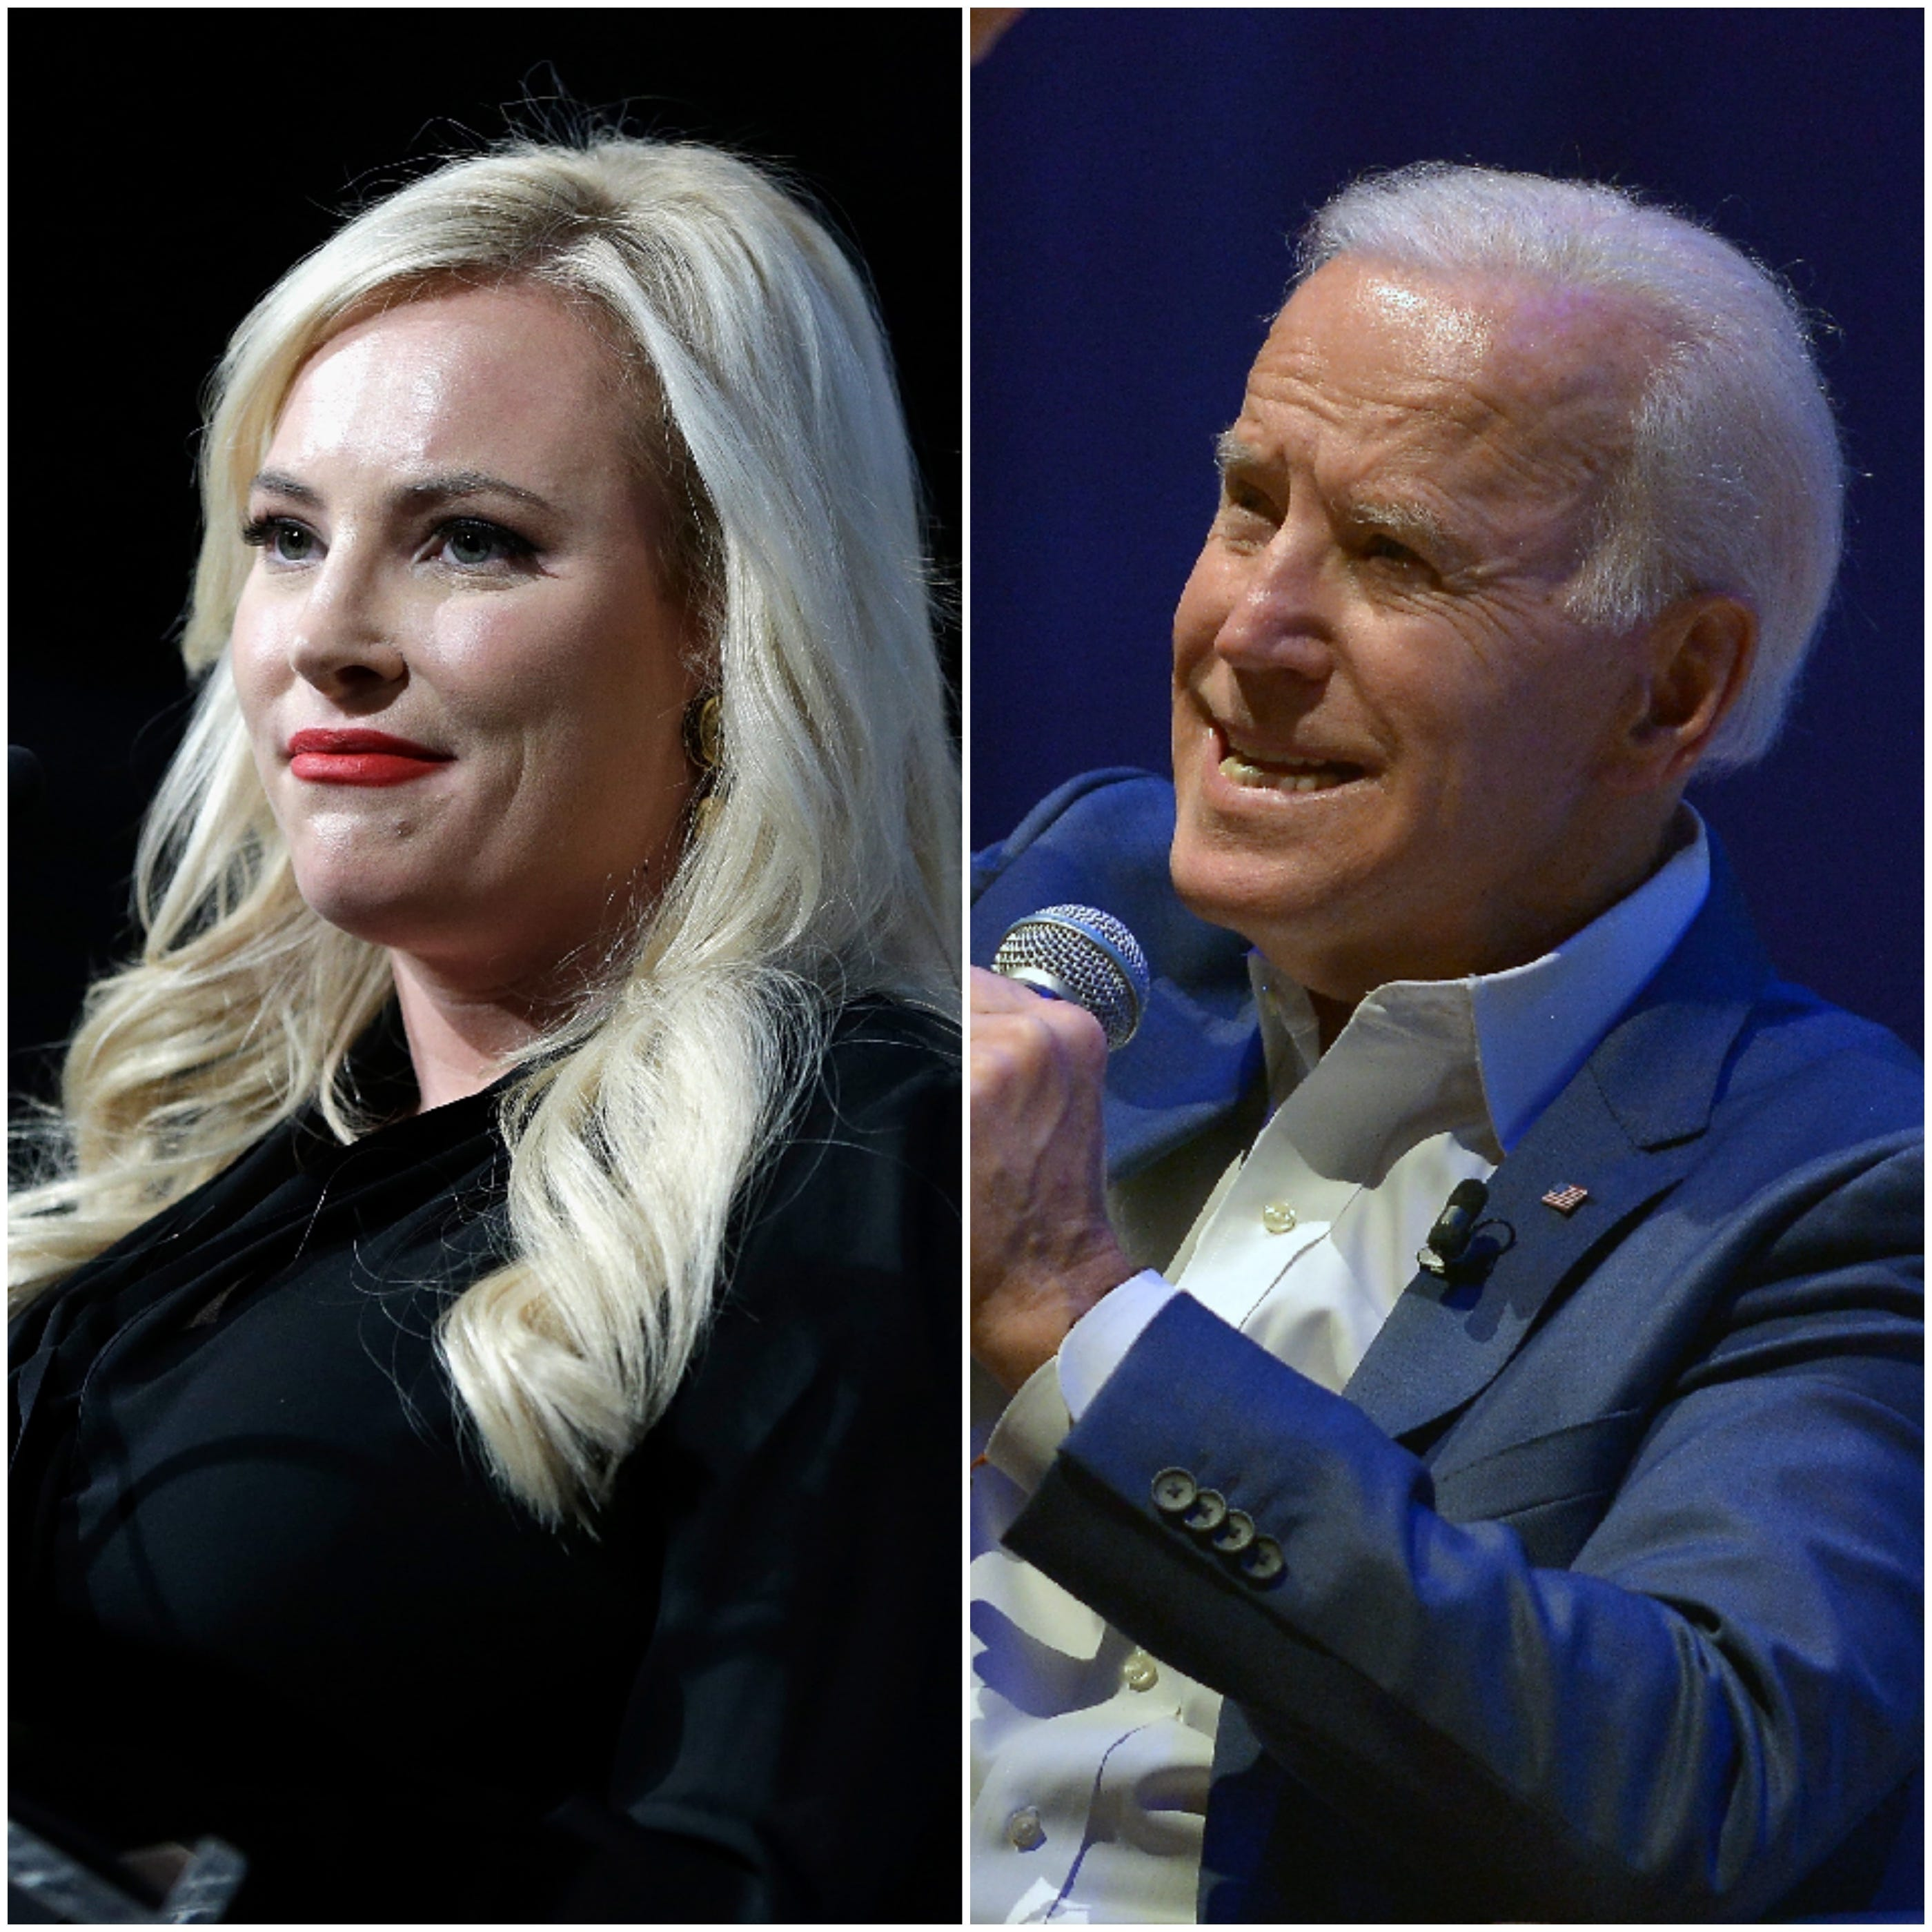 'The View': Joe Biden Tells Meghan McCain, 'If